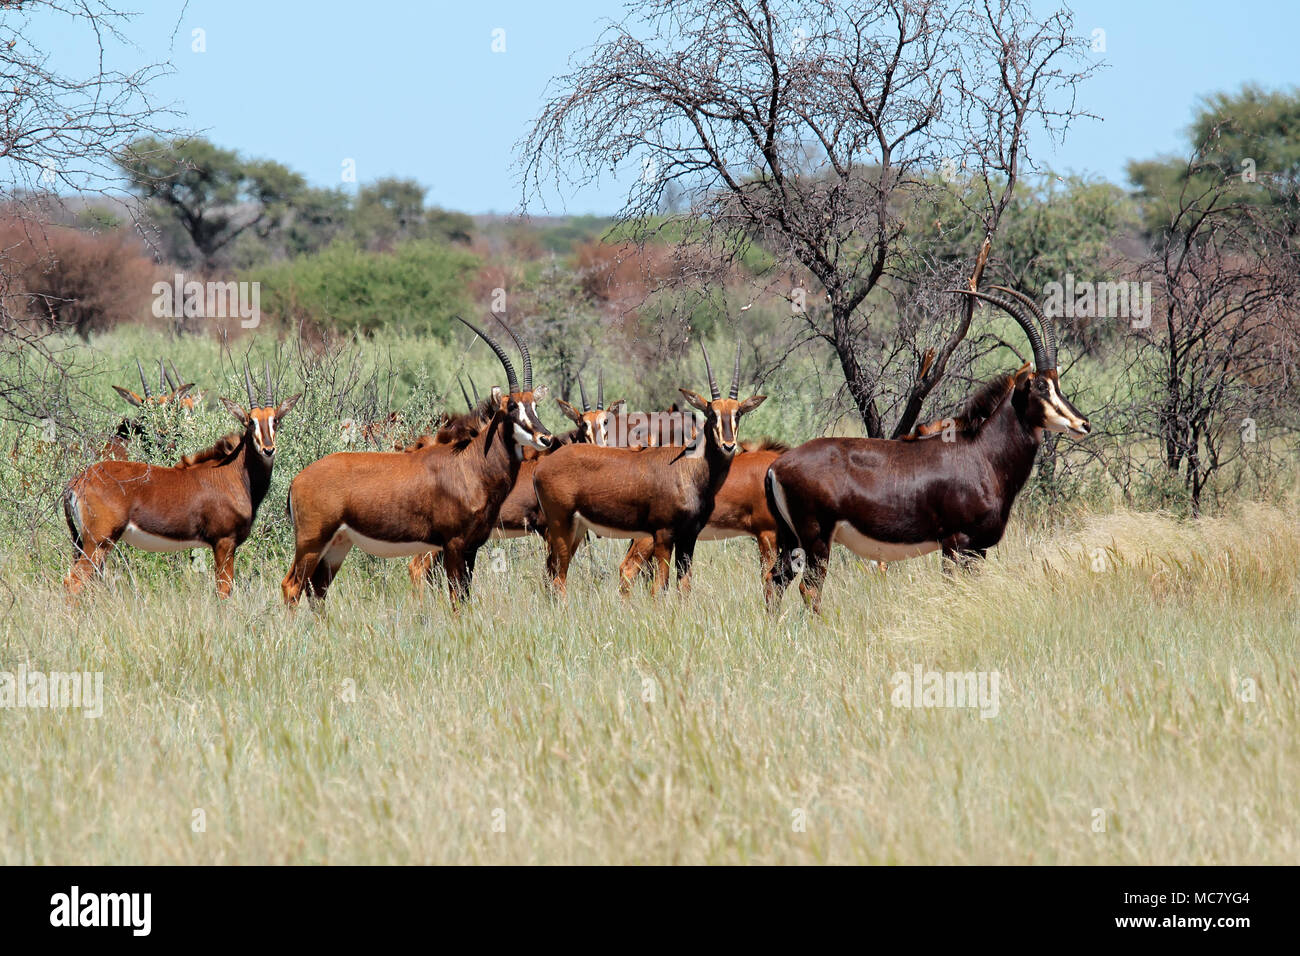 Small herd of sable antelopes (Hippotragus niger) in natural habitat, South Africa Stock Photo